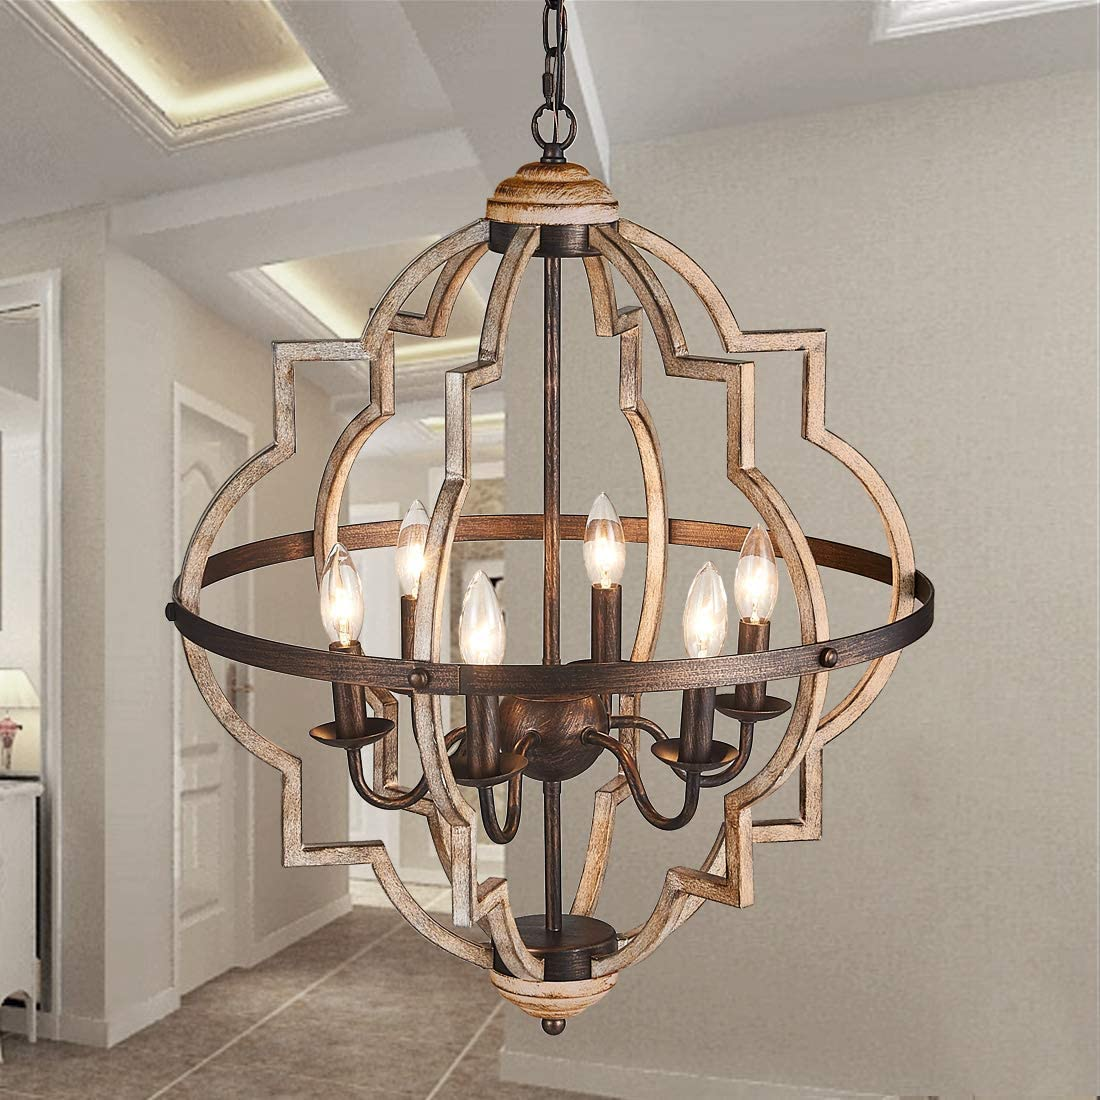 TZOE Orb 6-Light Chandelier Rustic Vintage Metal Chandelier Stardust Finish Foyer Chandelier Adjustable Height Dining Light Living Room Lighting Kitchen Chandelier UL Listed